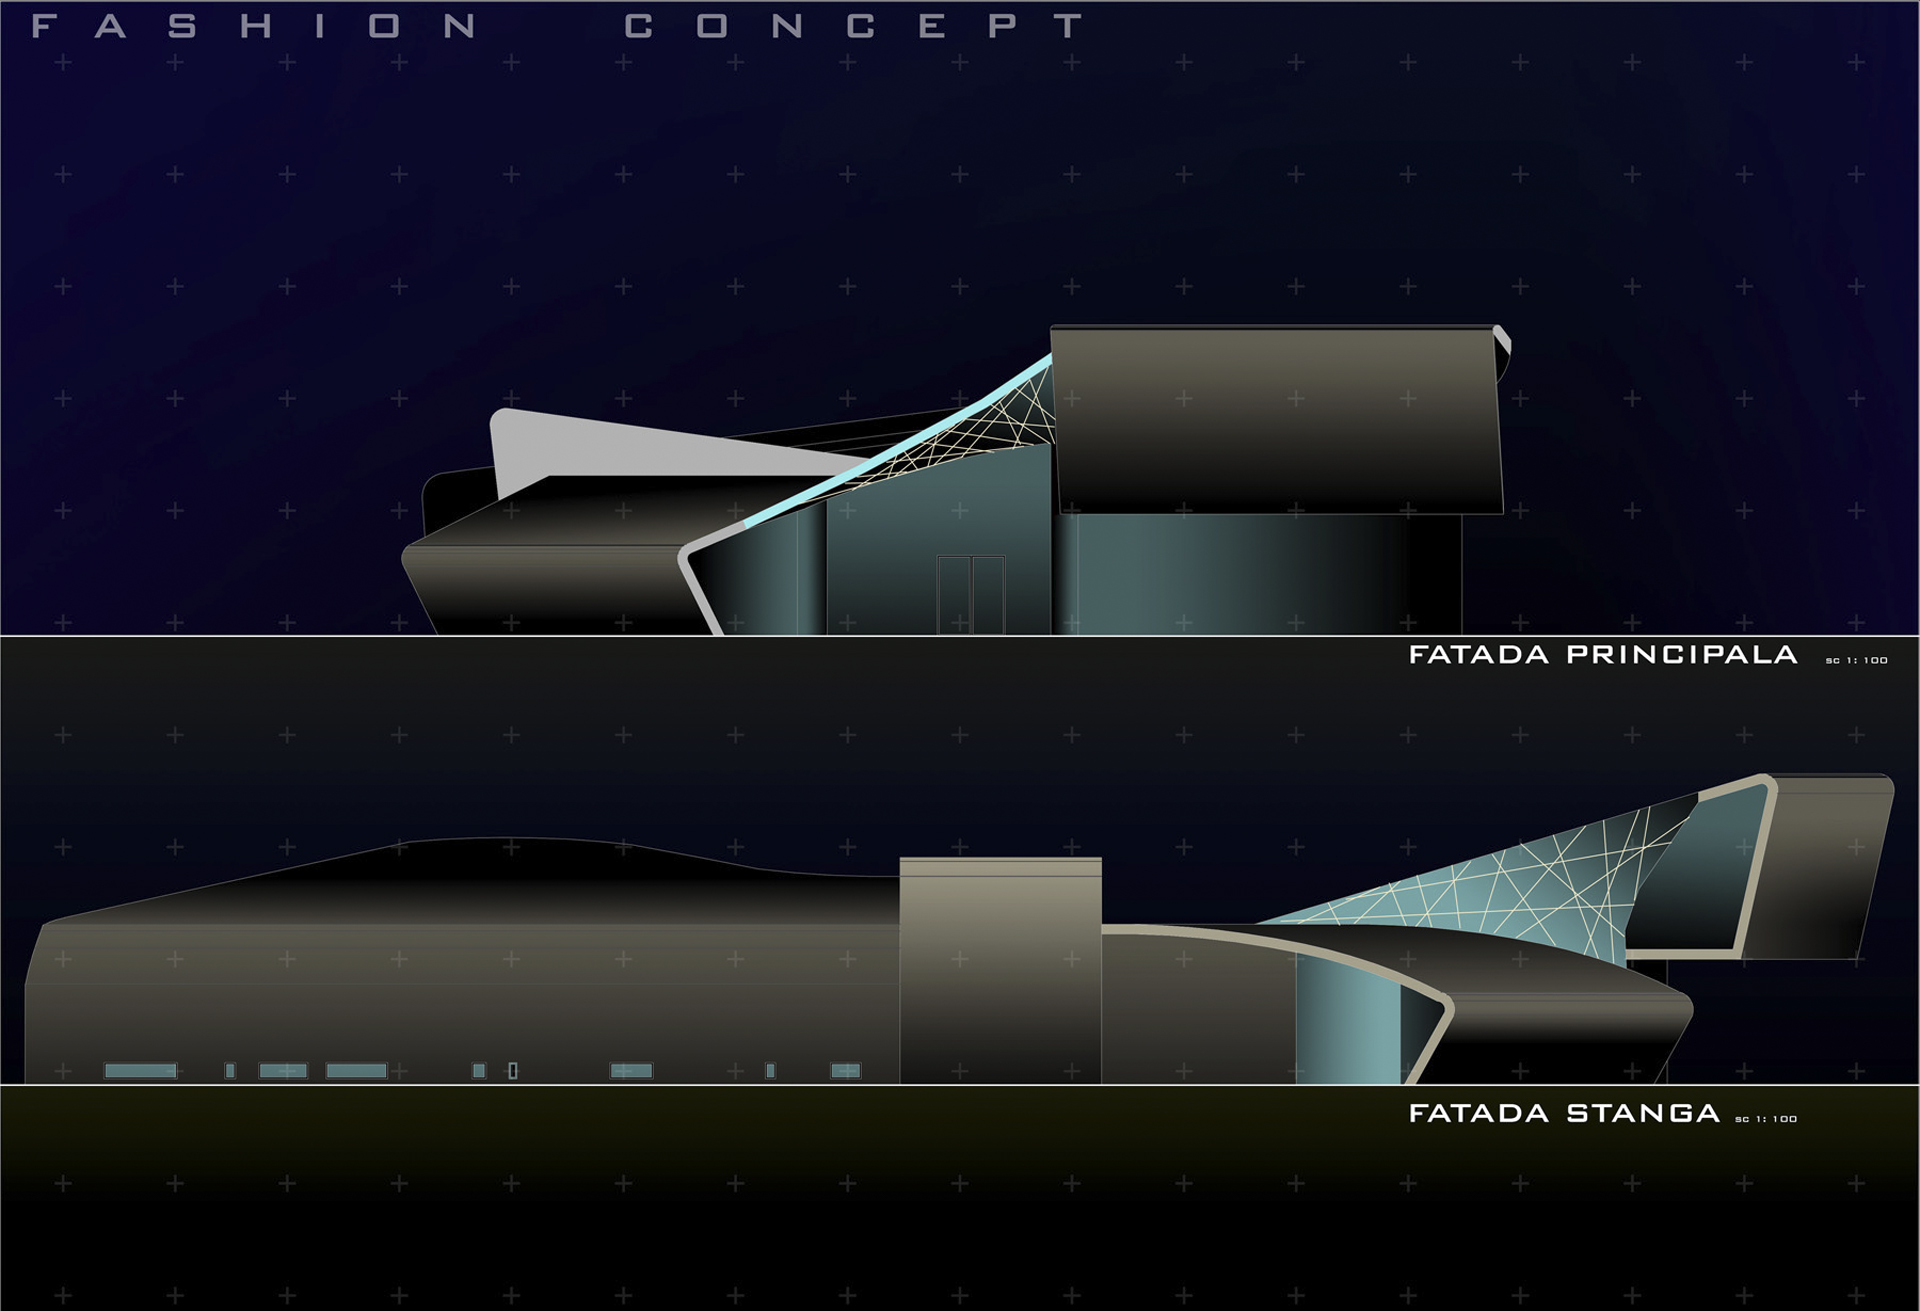 08-inspired-fashion-architecture-concept